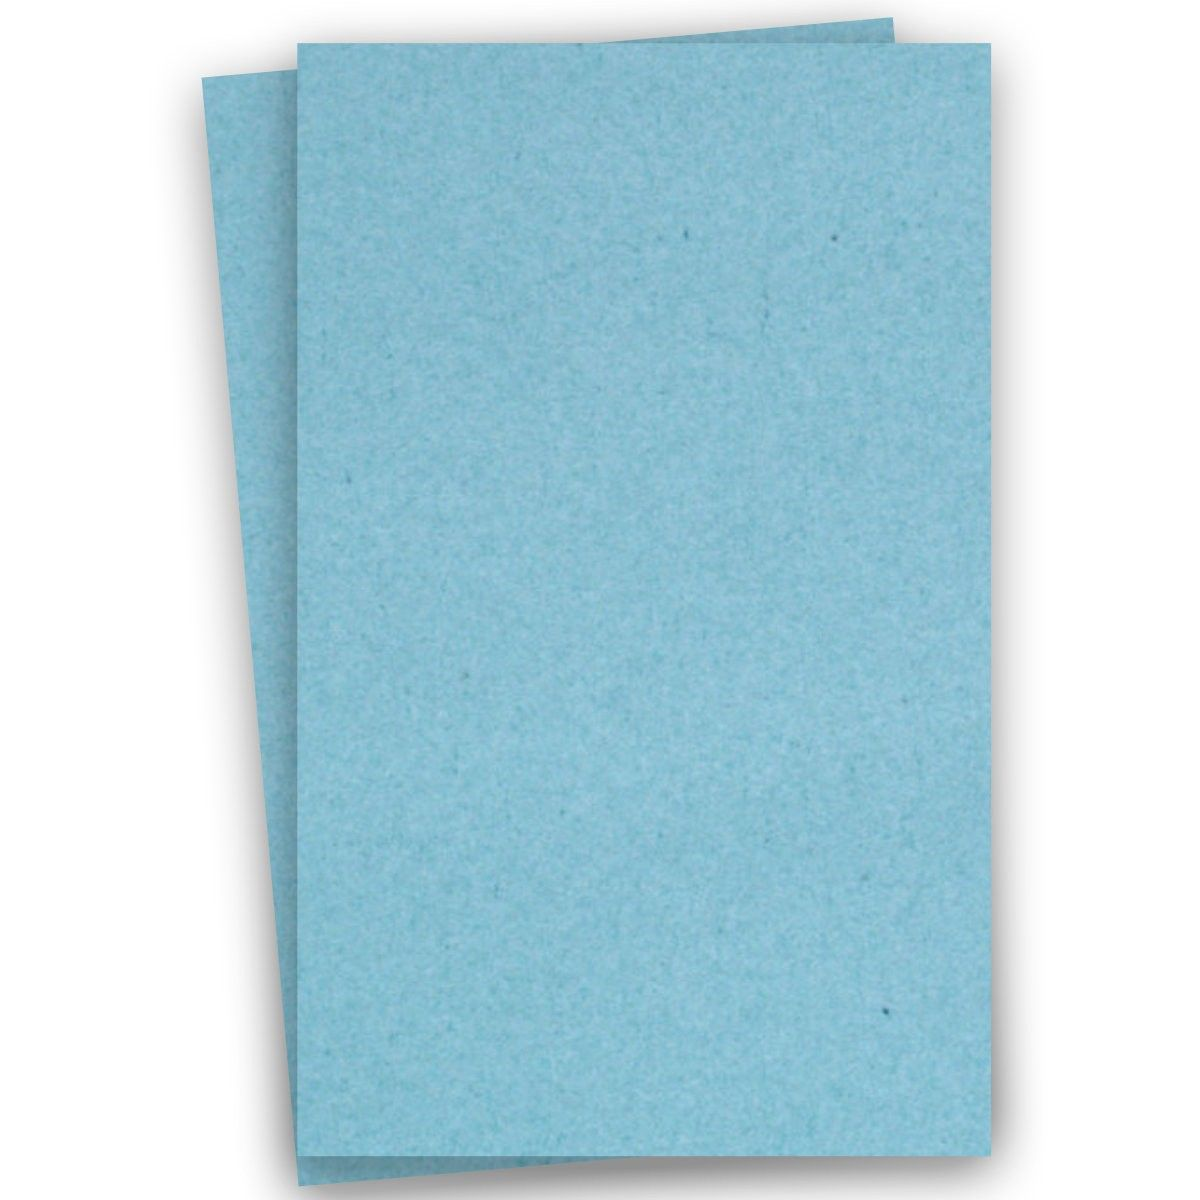 Remake Blue Sky 11x17 Card Stock Paper 92lb Cover 250gsm 100 Pk In 2020 Paper Luxury Paper Cardstock Paper